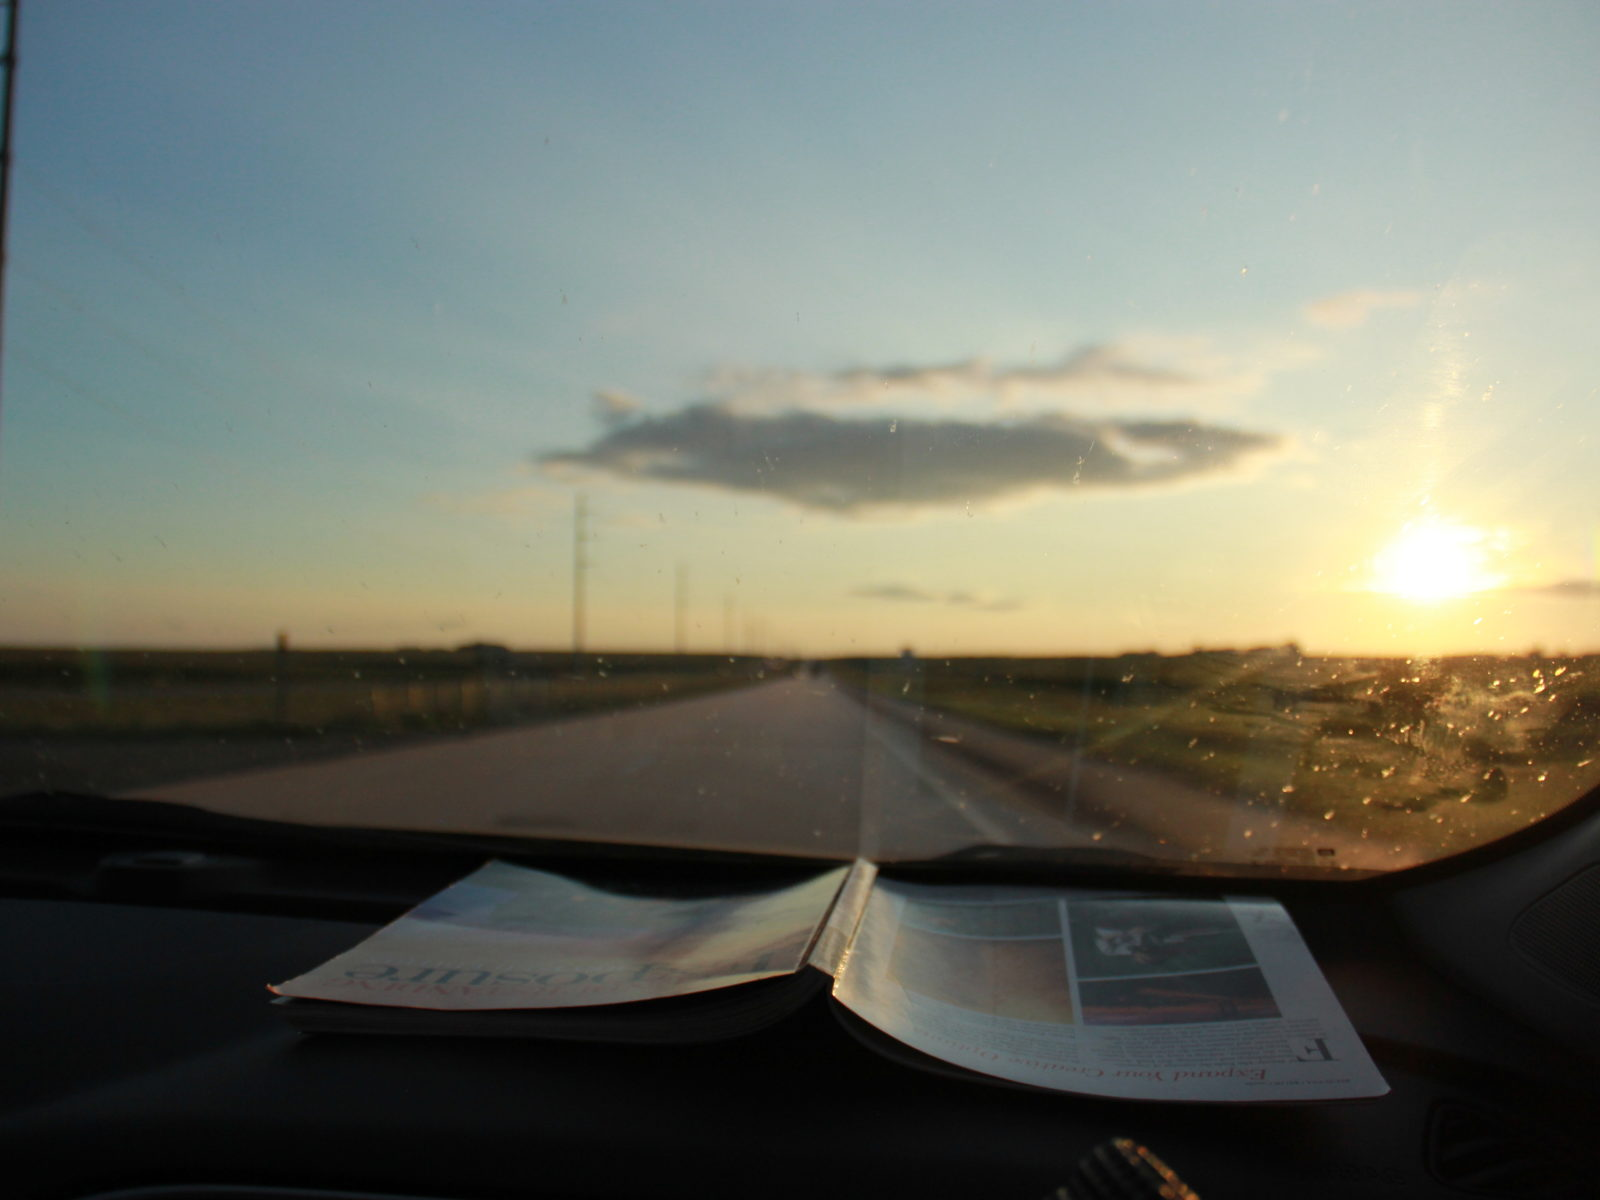 Open books and open roads